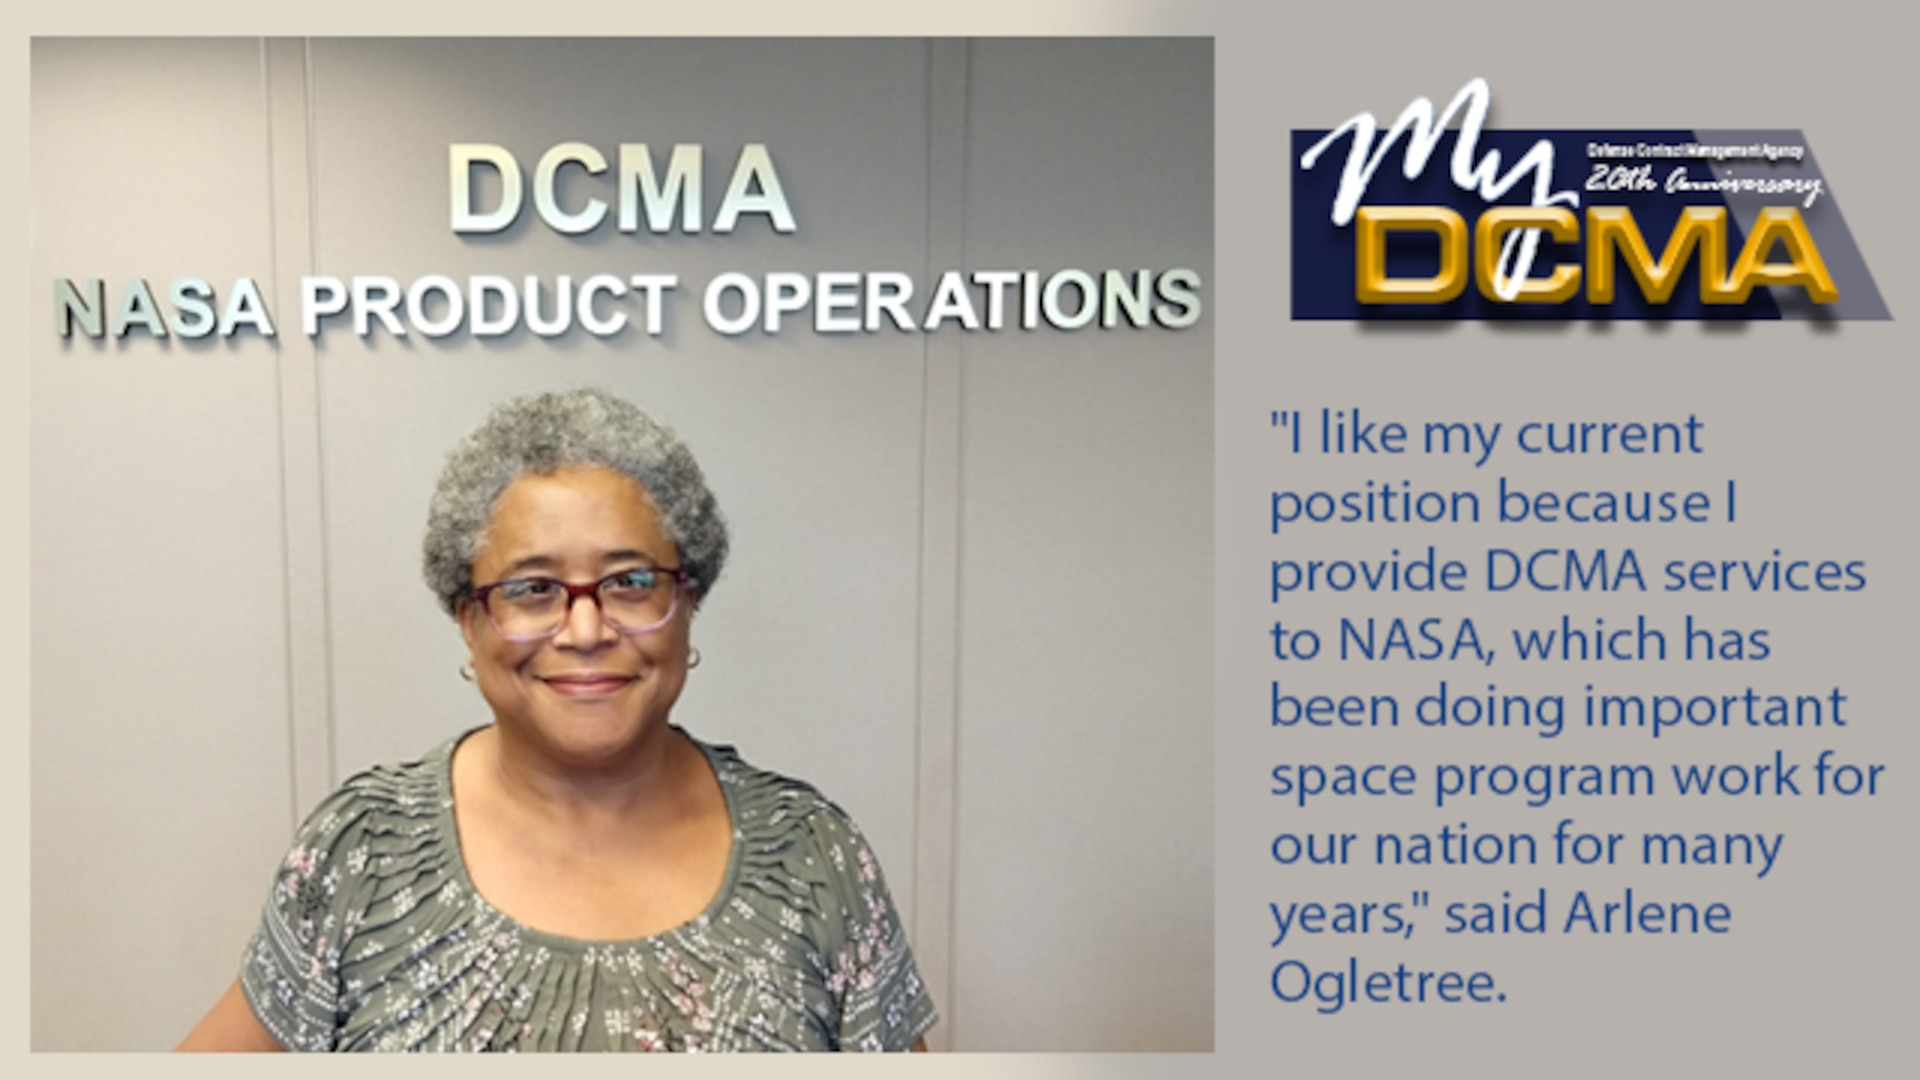 Smiling lady wearing a green and white shirt stands in front of a wall with the DCMA NASA Product Operations sign in the background